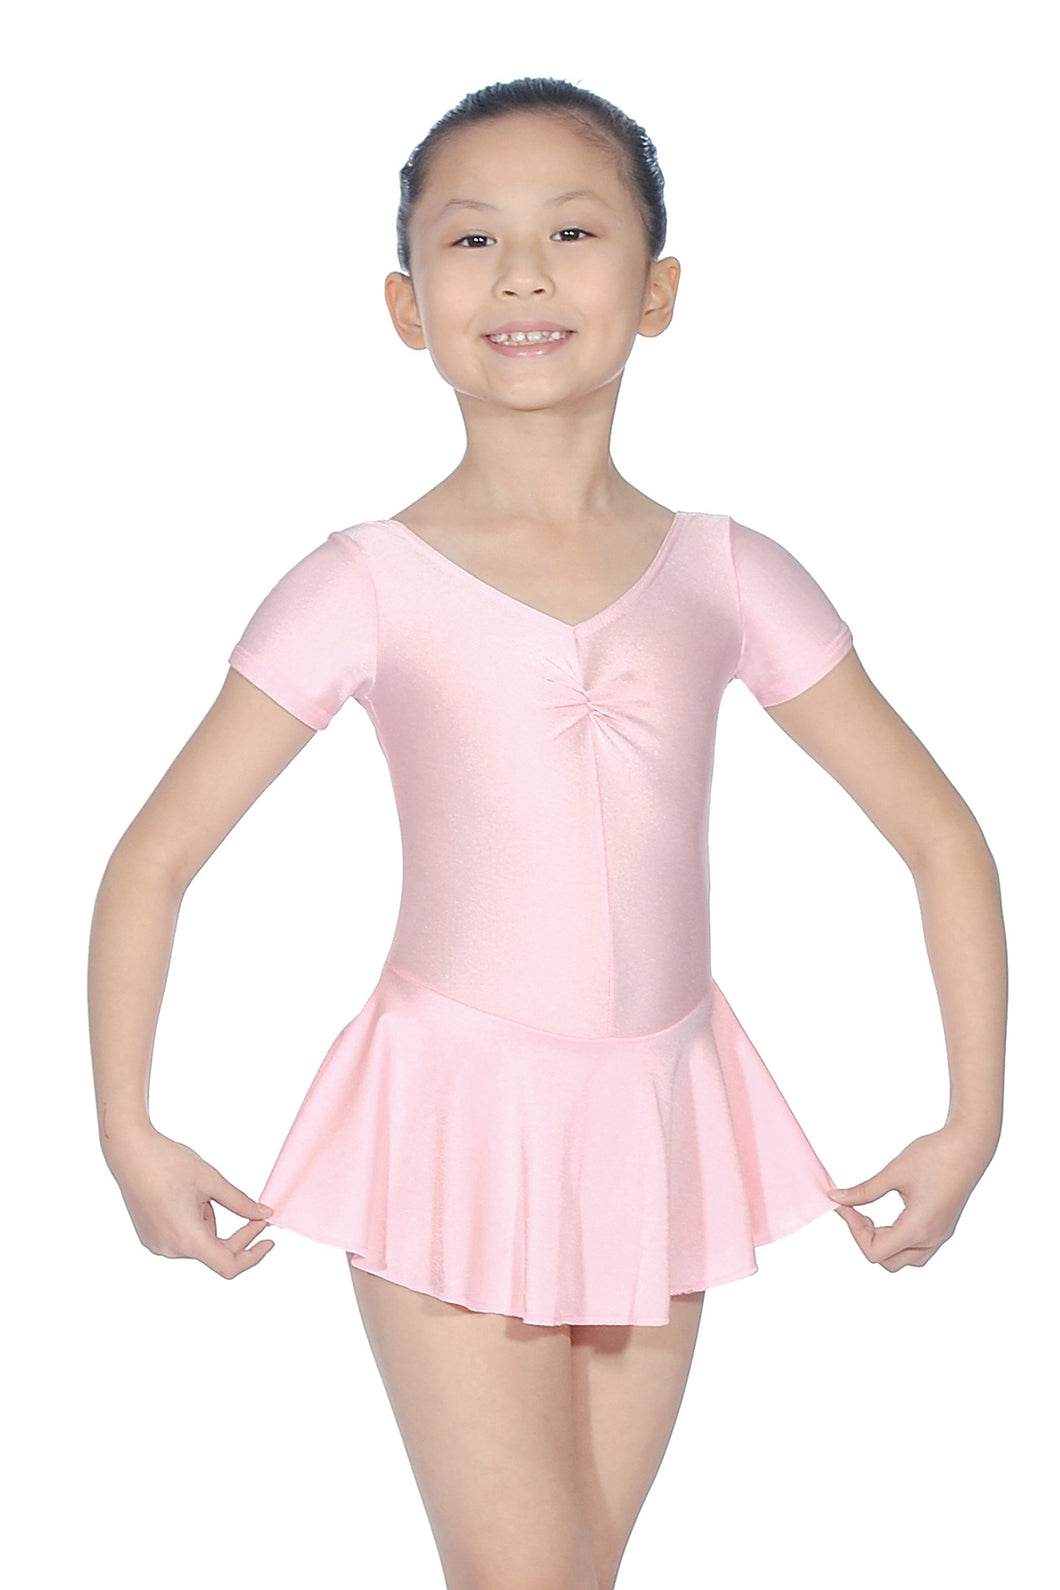 Roch Valley Capped sleeve pink leotard with attached skirt